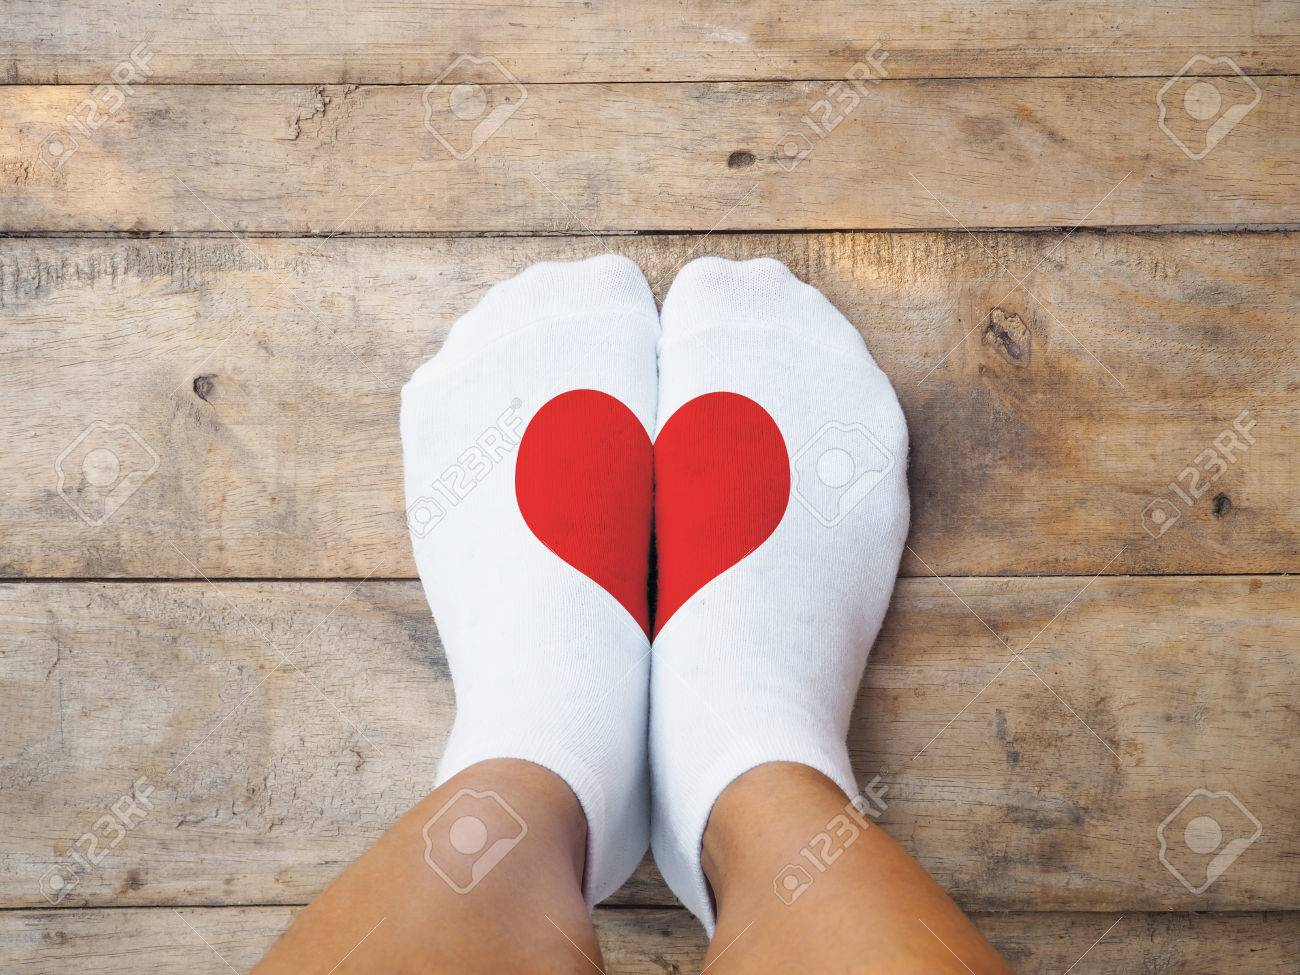 Selfie feet wearing white socks with red heart shape on wooden floor background. Love concept. - 69908797